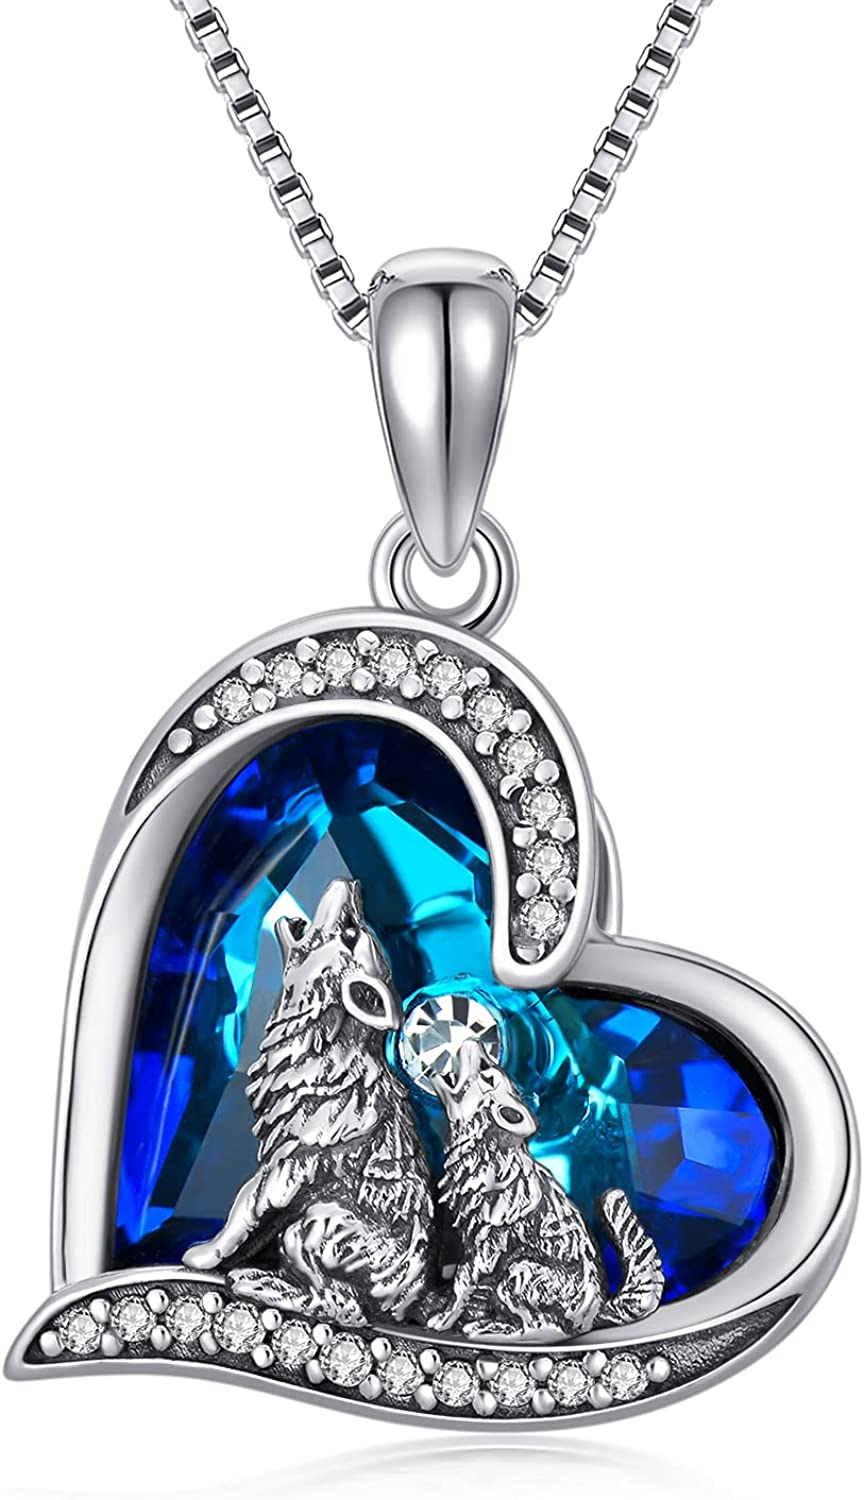 POPKIMI Purchase Sterling Silver Wolf Pendant Howling Jewelry Neckla A surprise price is realized